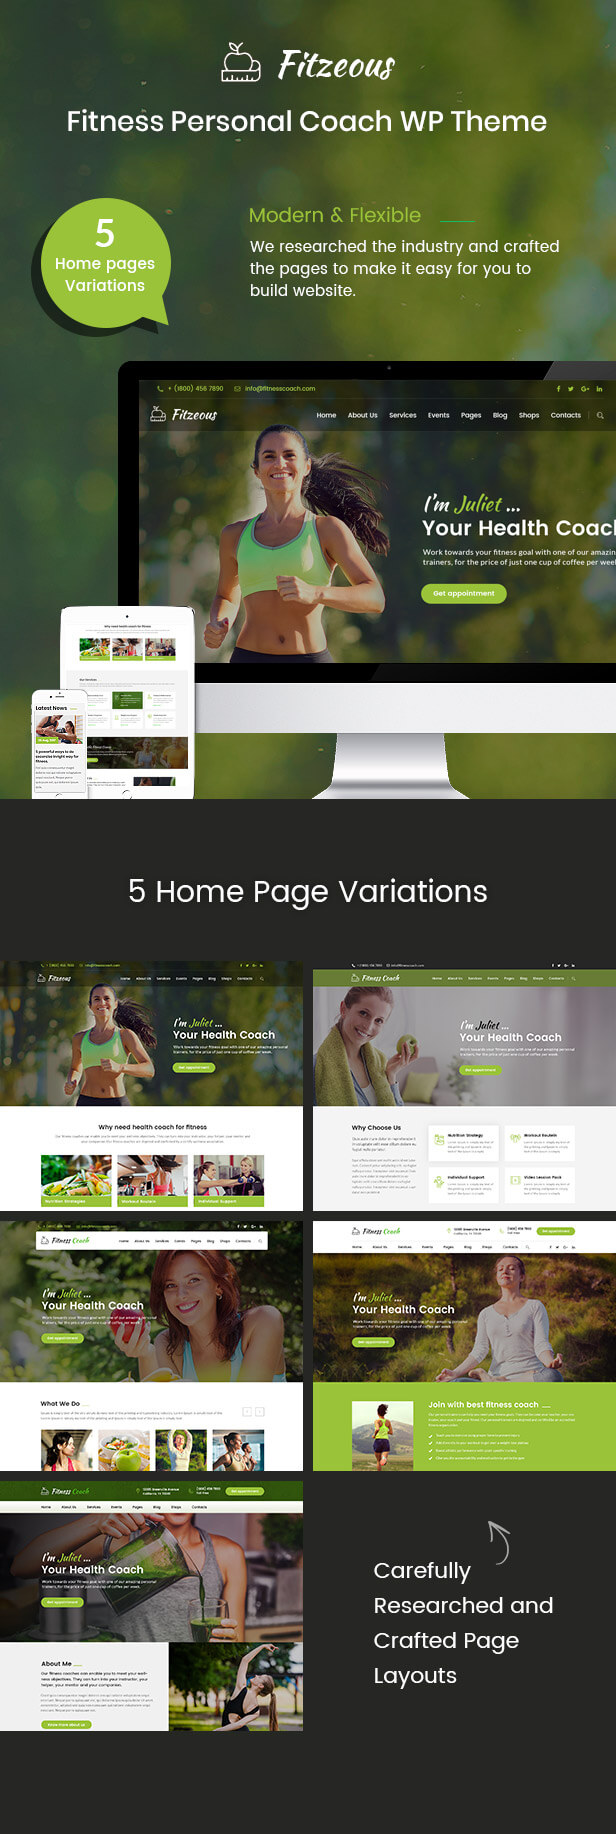 Fitzeous - Personal Fitness Trainer WordPress Theme - 2